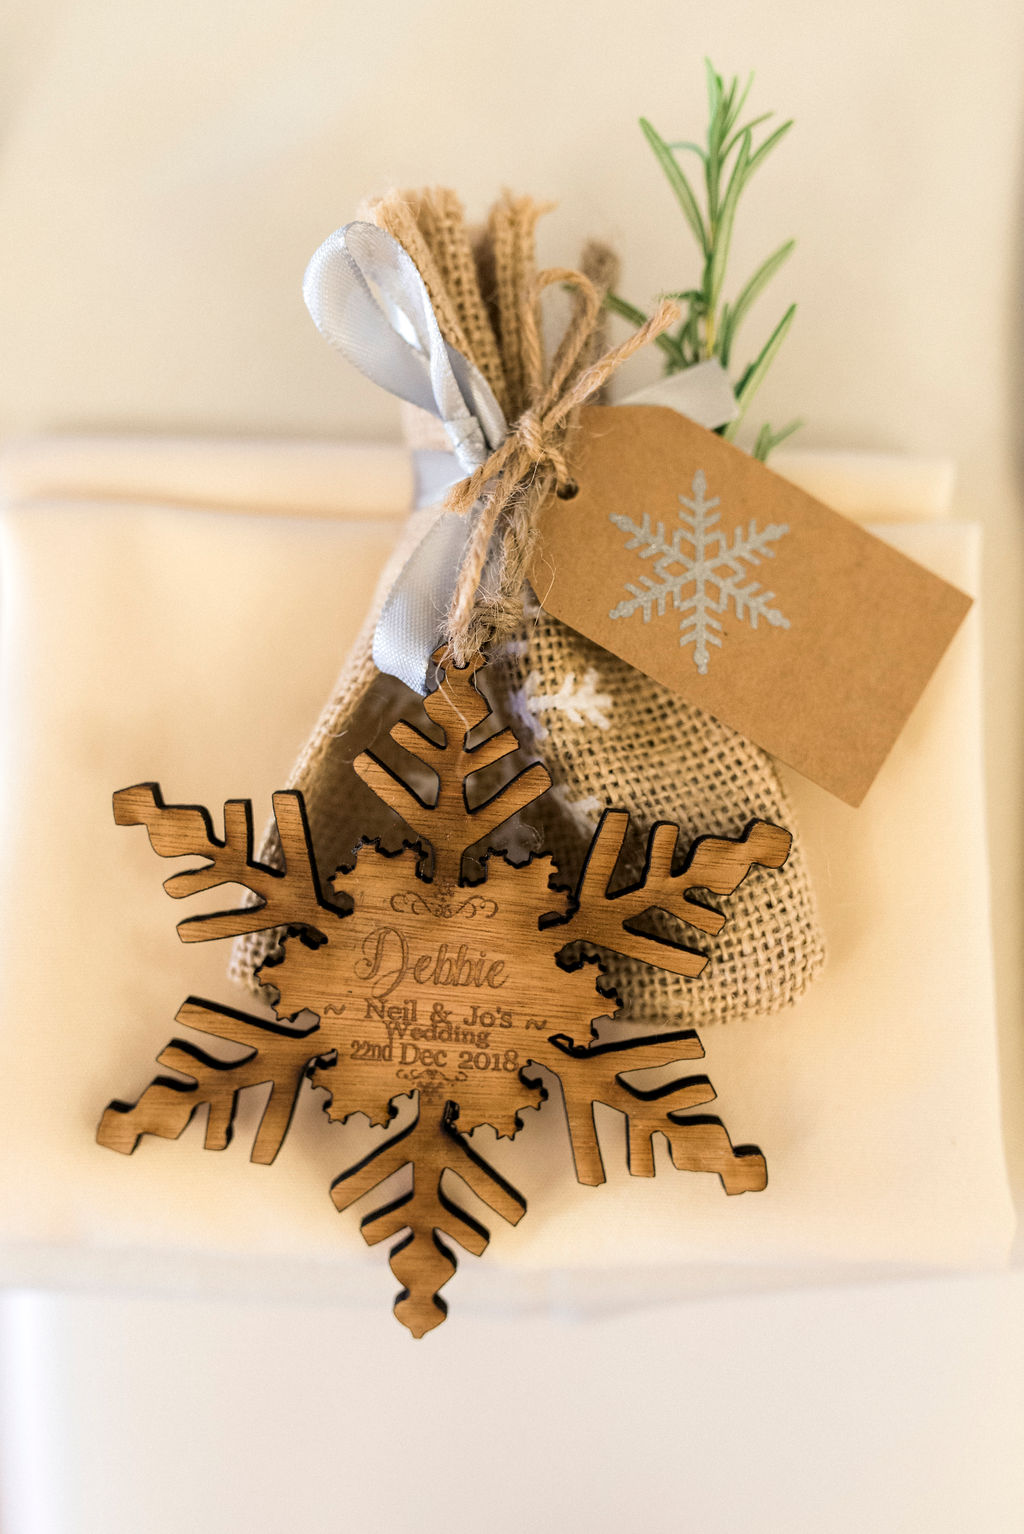 Festive wedding favour of wooden Christmas Tree decoration